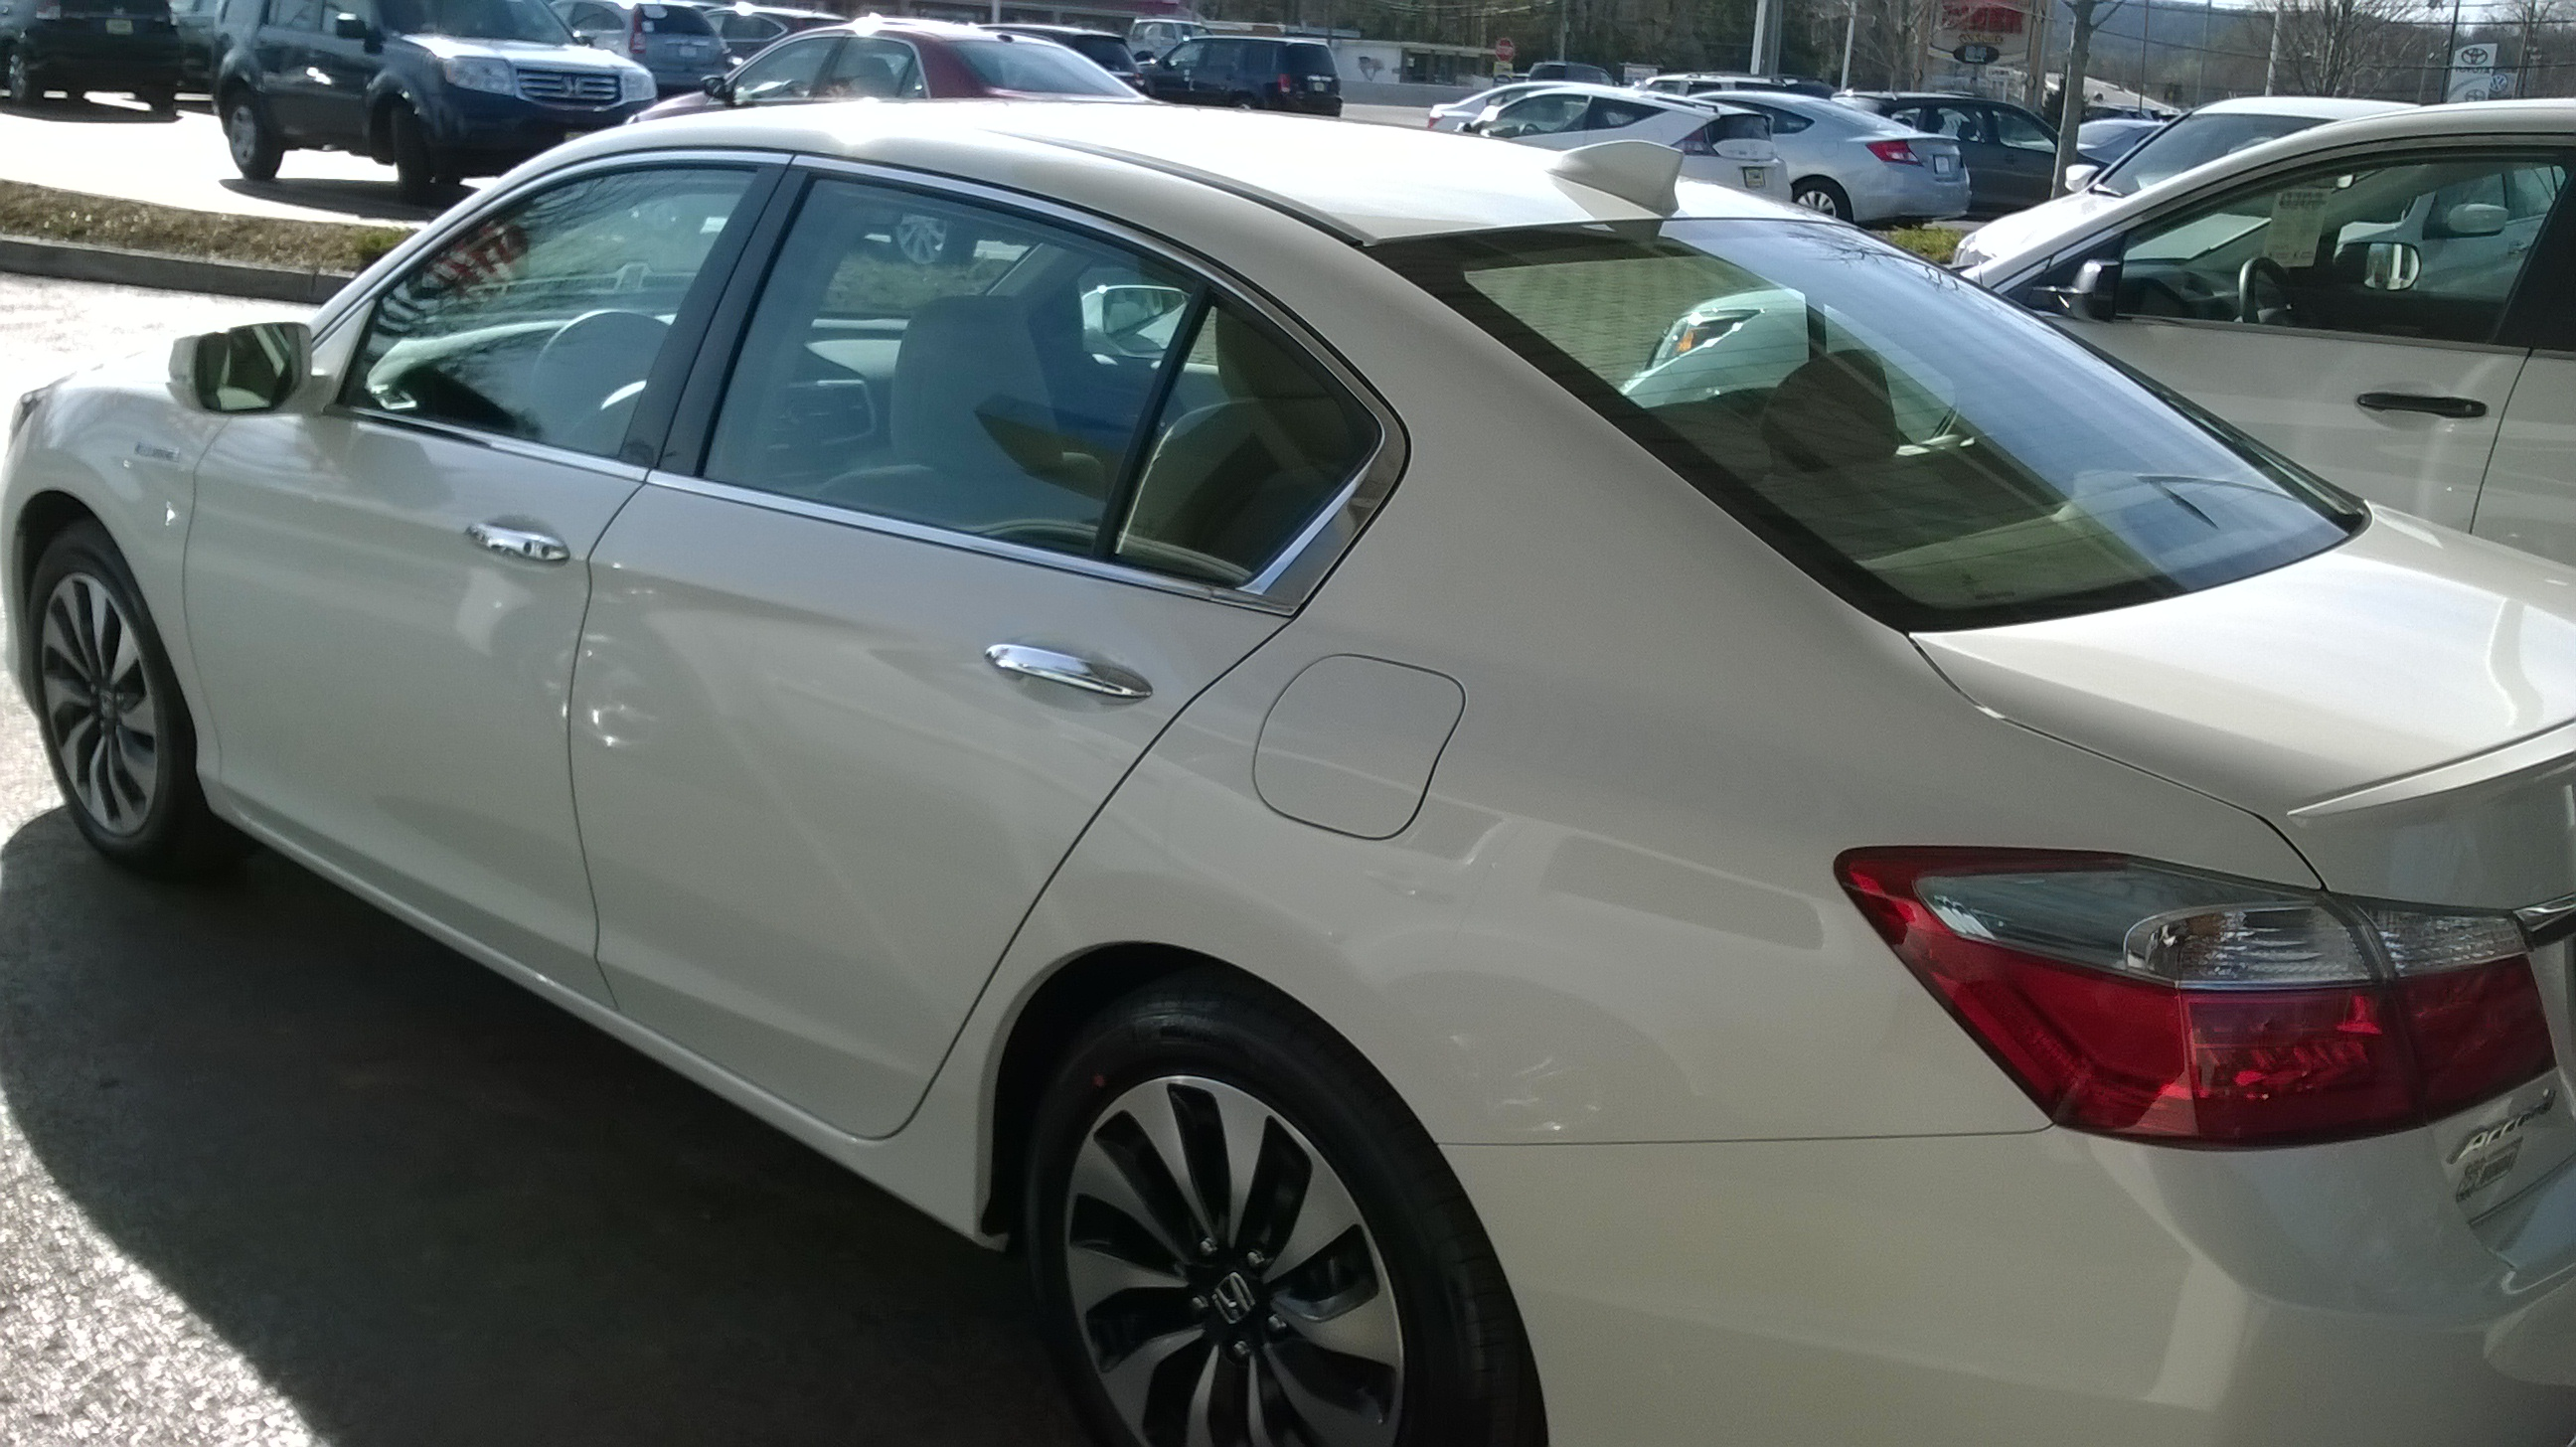 hagerstown car dealers honda day memorial places view event sales md